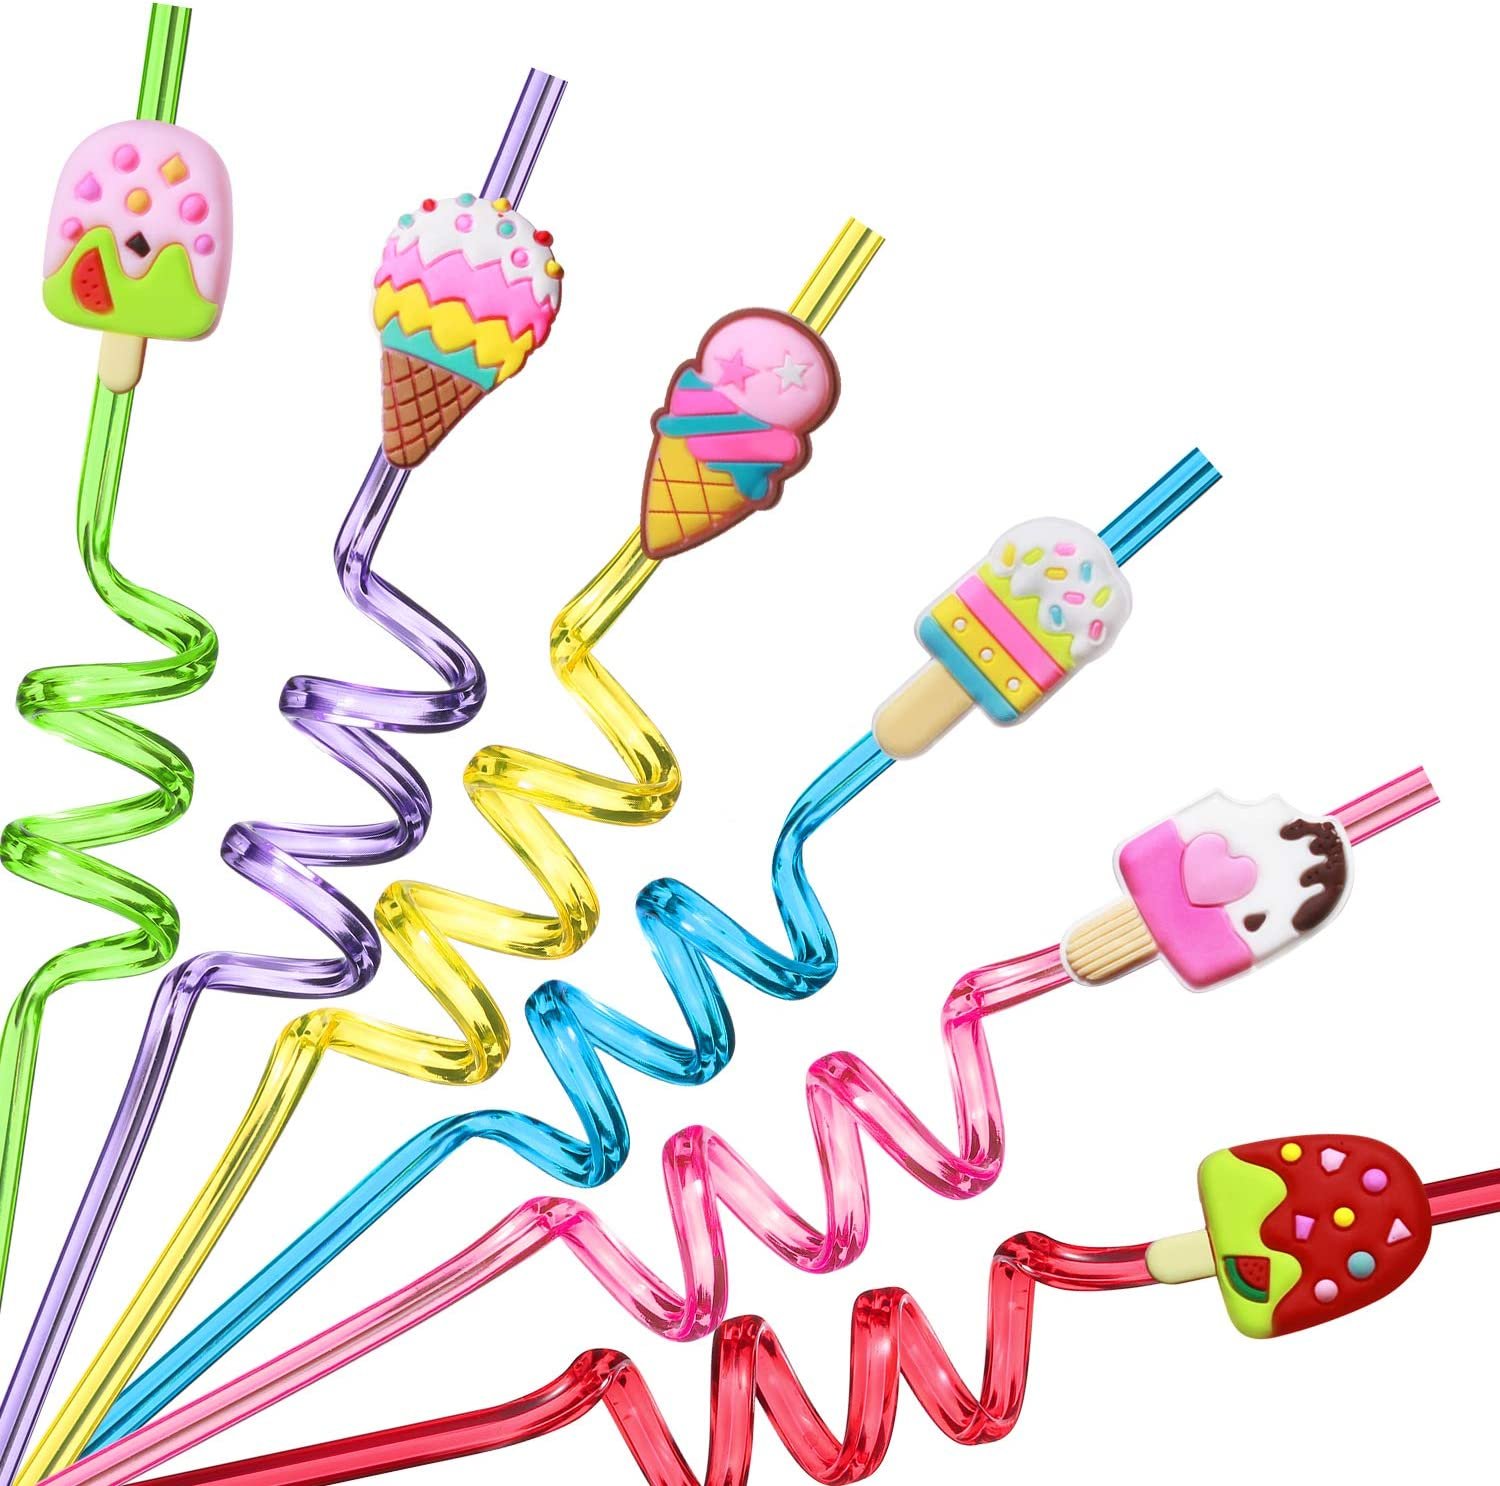 24 Reusable Ice Cream Straws for Birthday Party Supplies | Party Favors with 2 Cleaning Brush